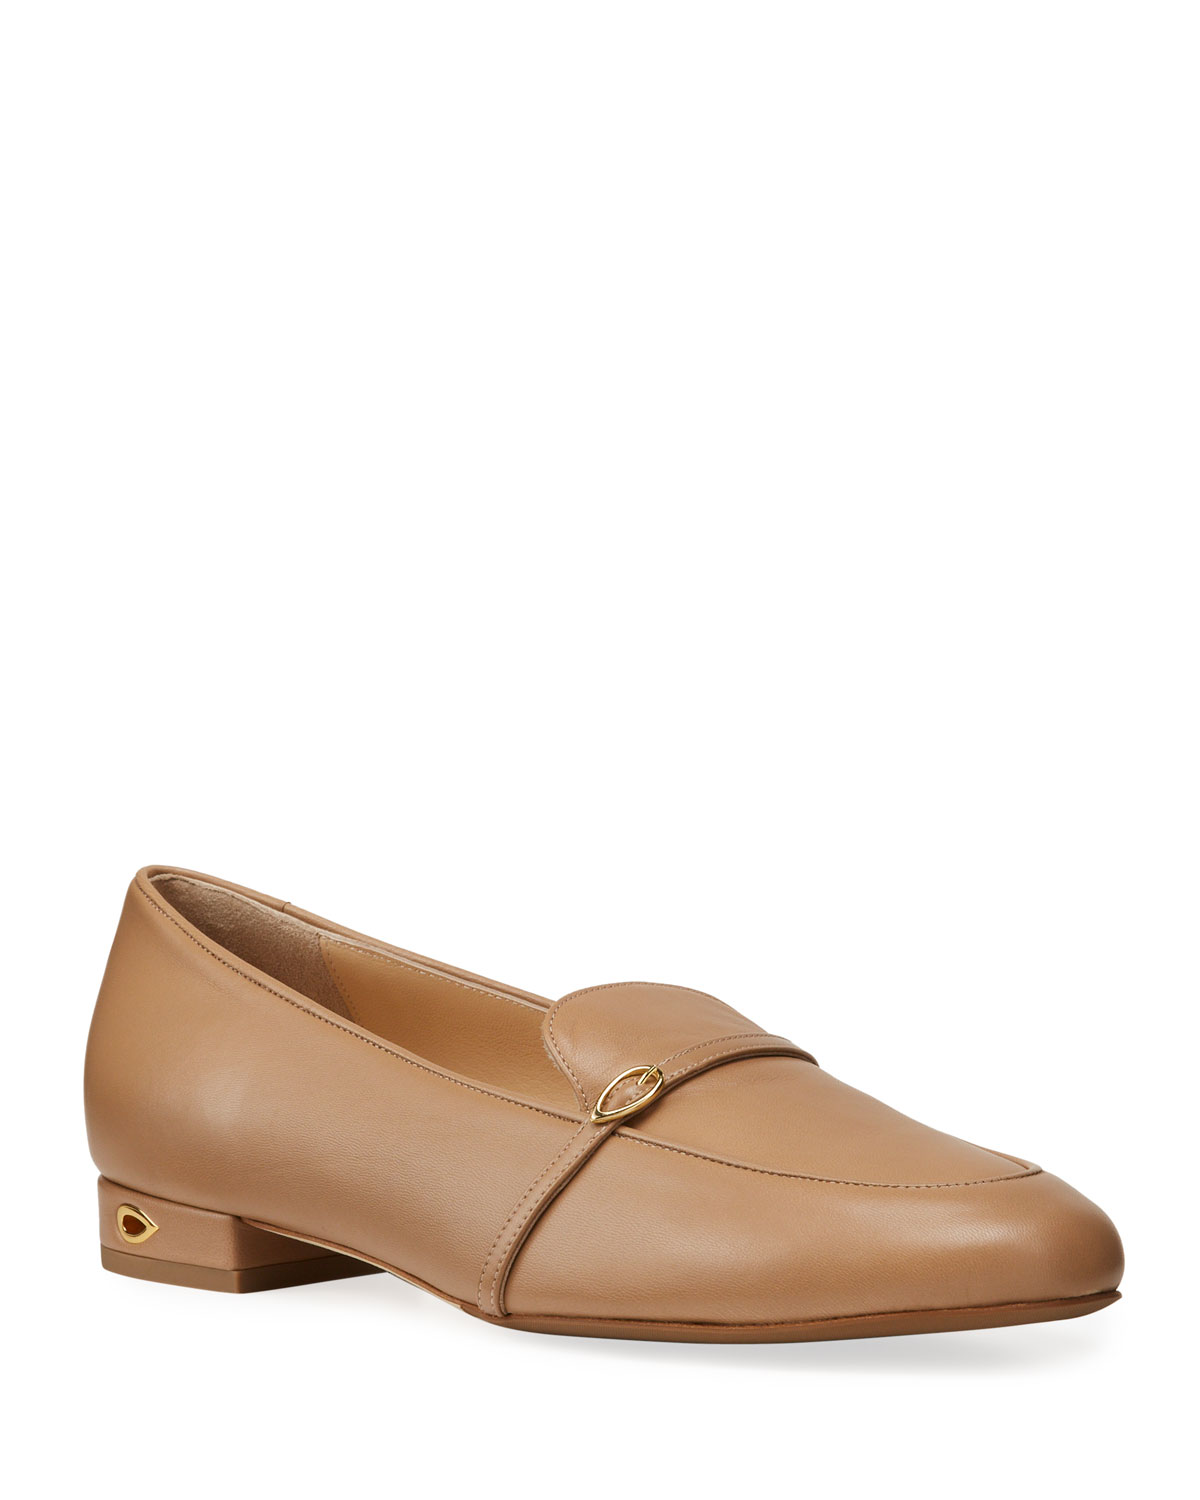 Fabrizio Leather Buckle Slip-On Loafers